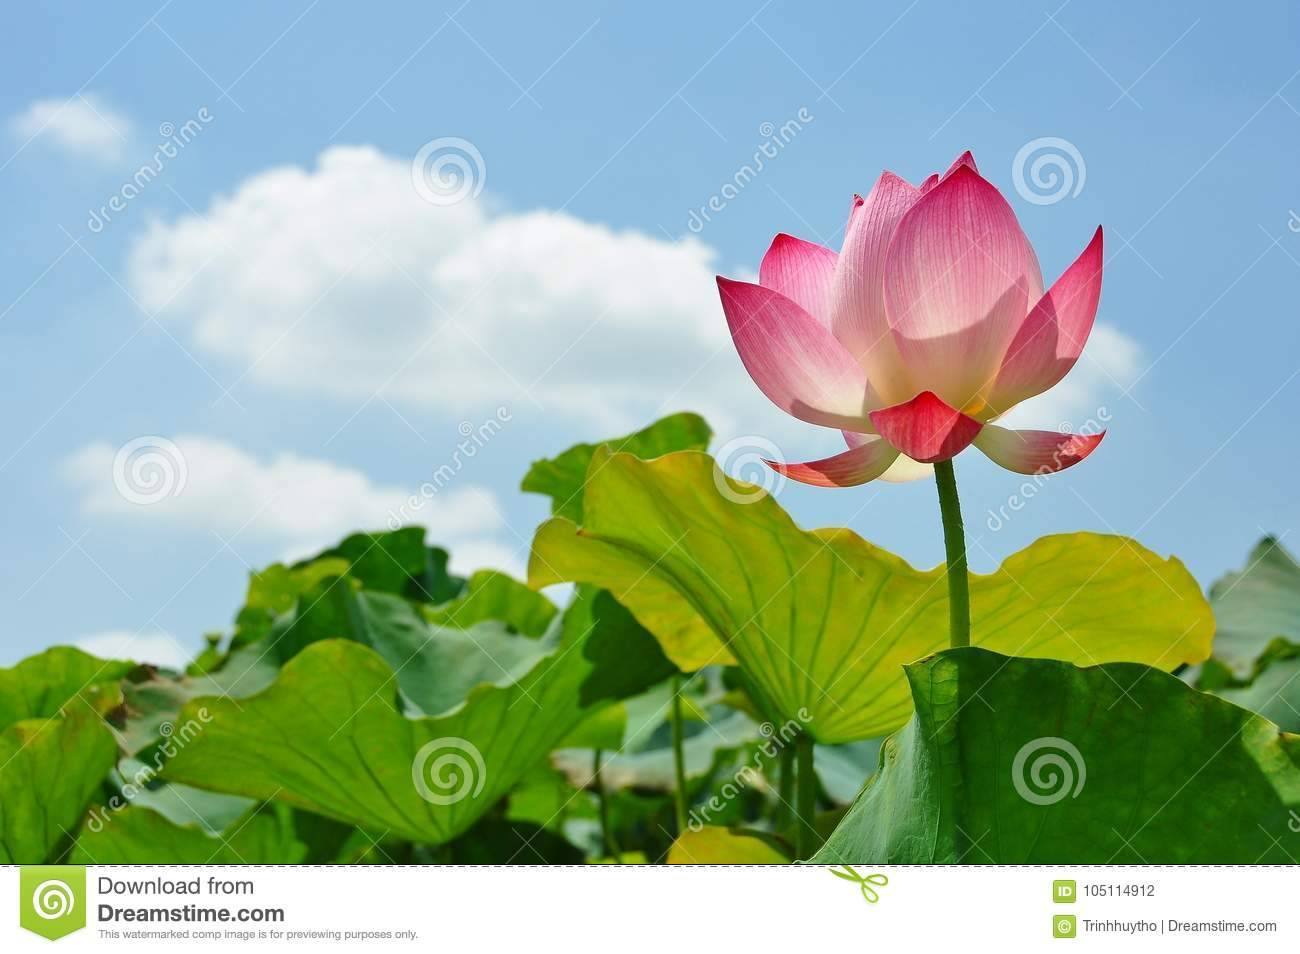 Lotus flower rising from mud to the sunshine stock photo image of royalty free stock photo izmirmasajfo Image collections